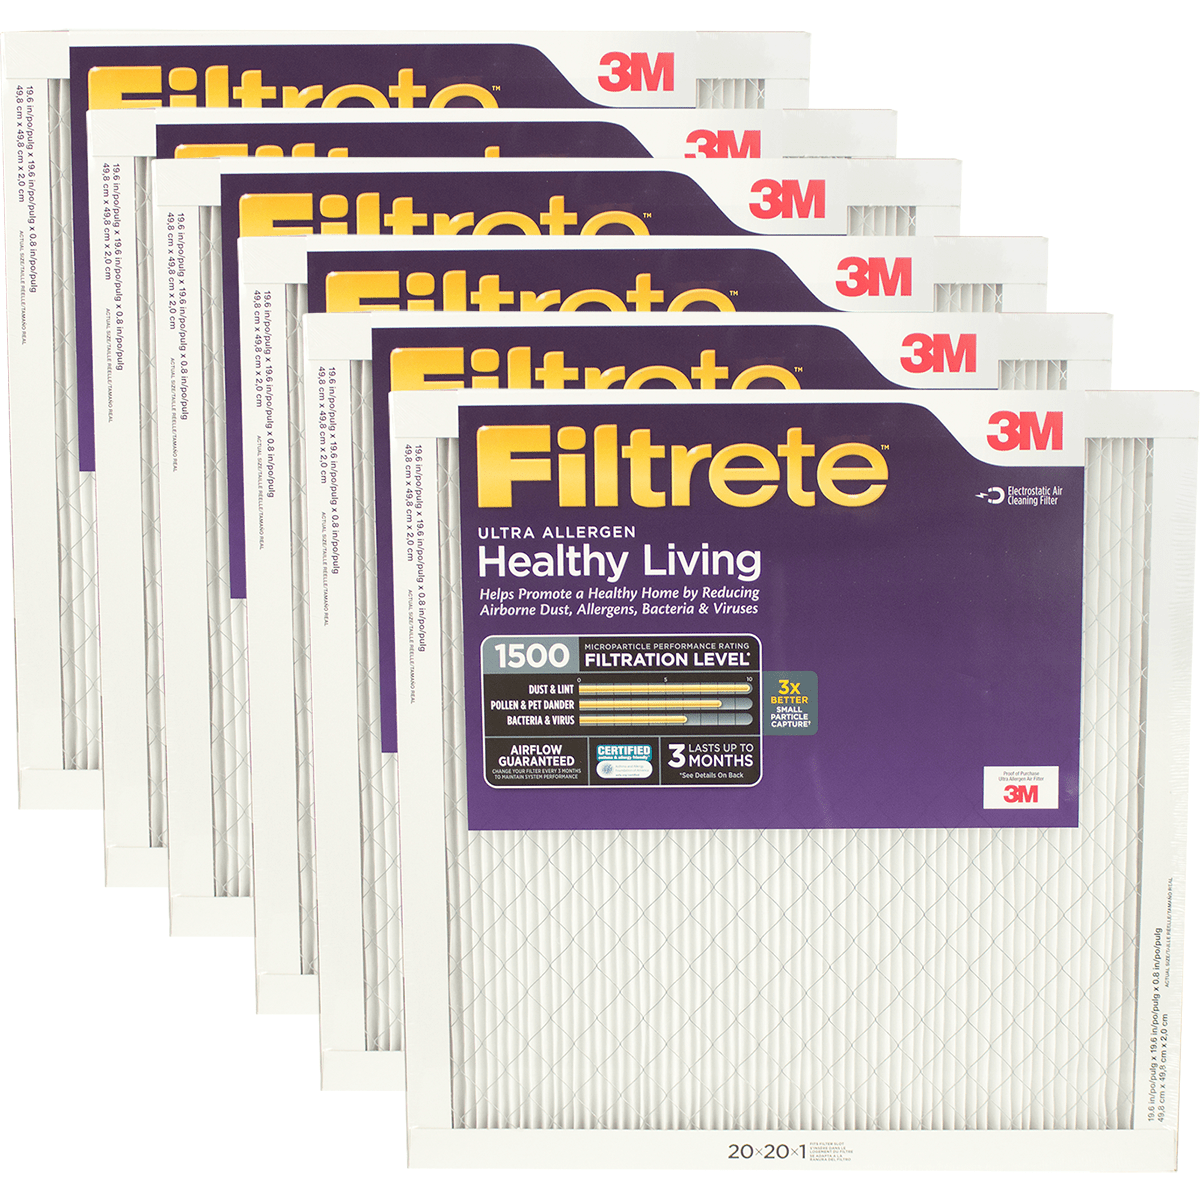 3m Filtrete Healthy Living 1500 Mpr Ultra Allergen Reduction Filters 20x20x1 6-pack